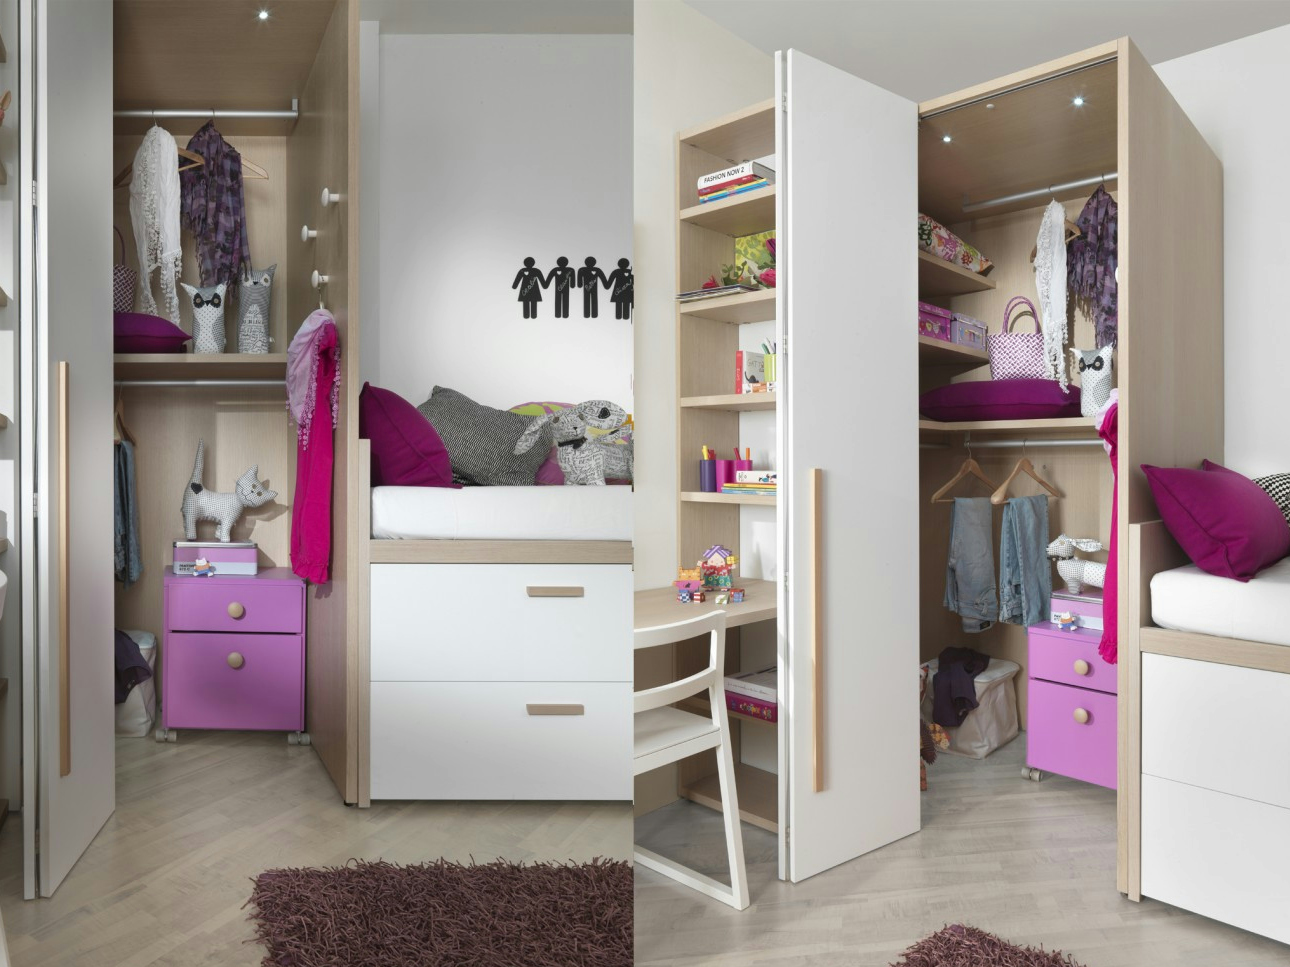 2012 bett mit aufbewahrung by dearkids. Black Bedroom Furniture Sets. Home Design Ideas